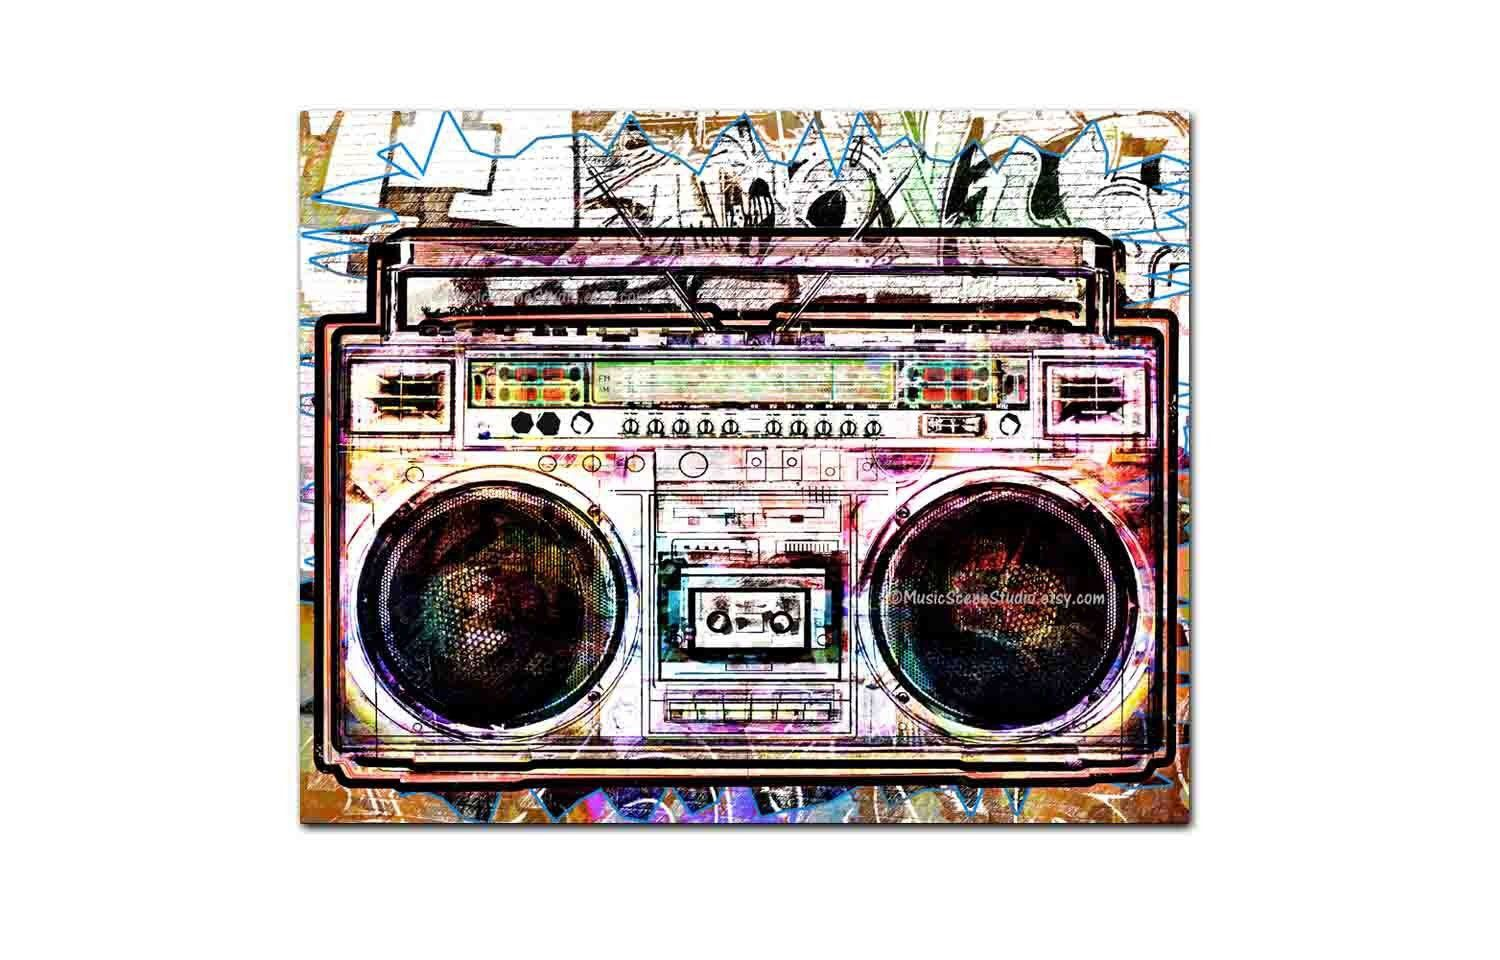 Large Canvas Wall Art Boombox Ghetto Blaster Art Cool Etsy In 2020 Large Canvas Wall Art Modern Canvas Art Large Canvas